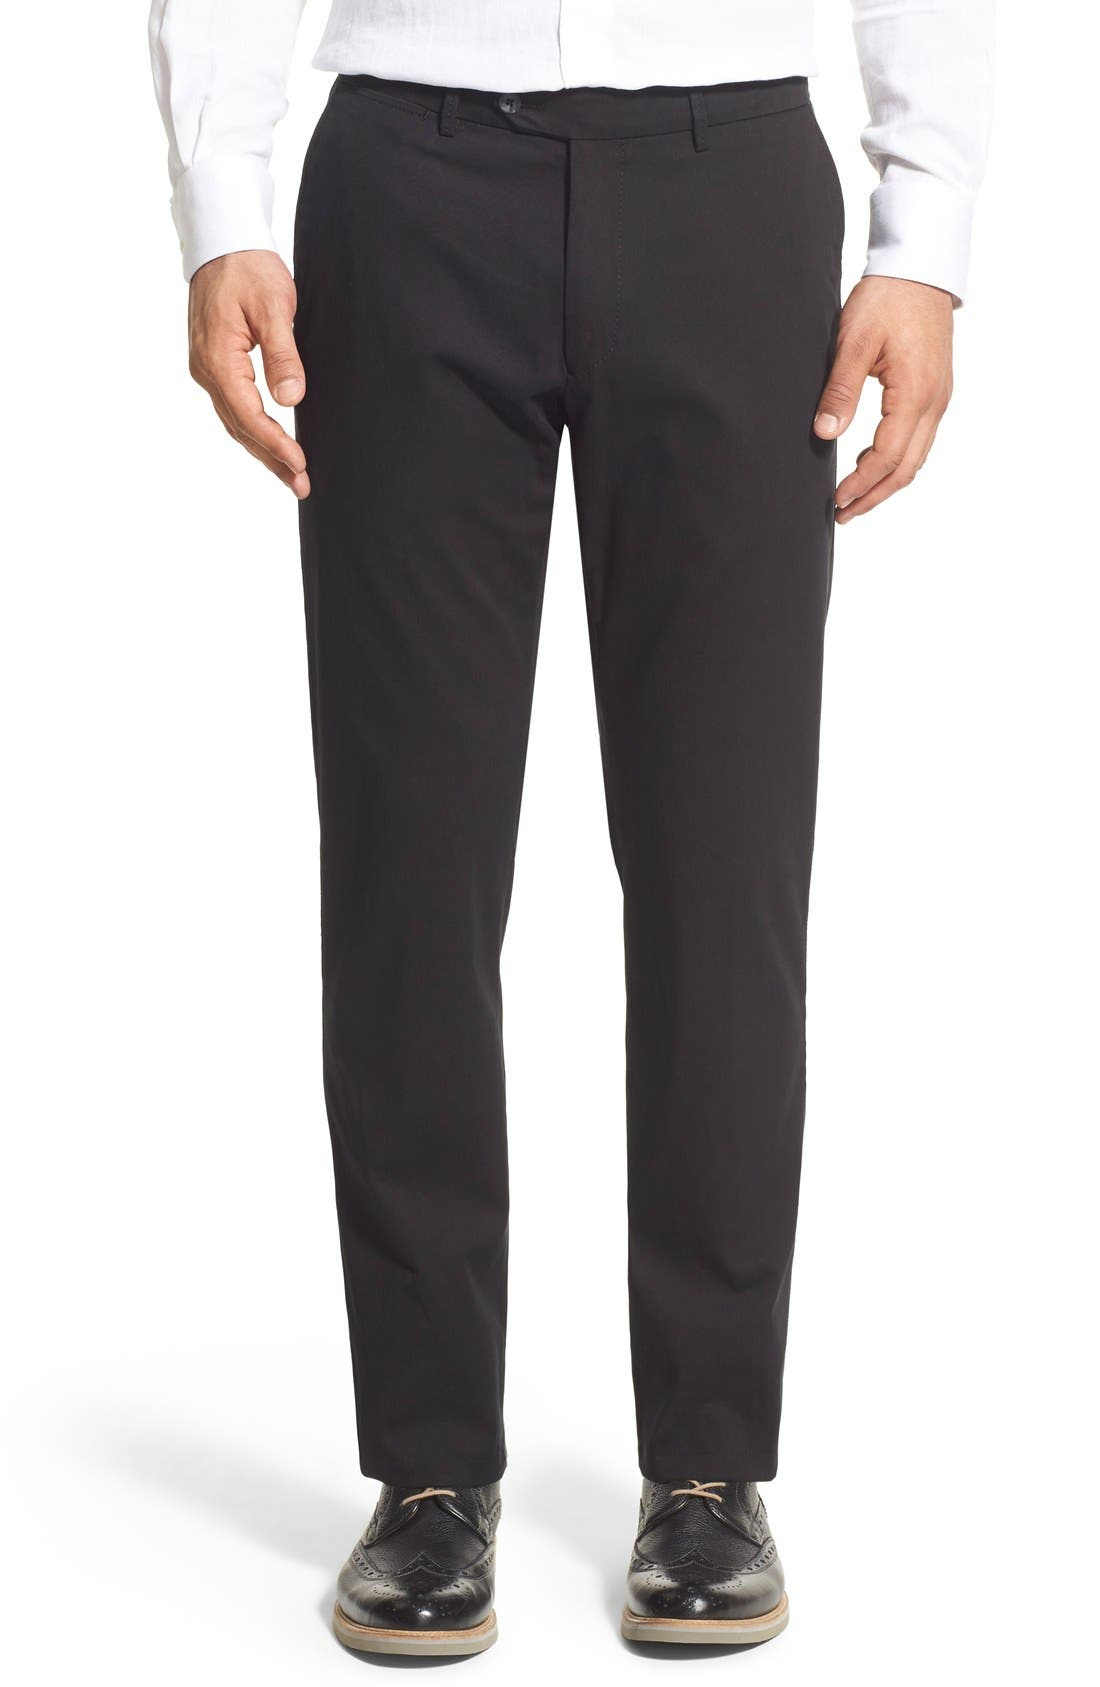 Atwater Cotton Twill Pants,                         Main,                         color, 001